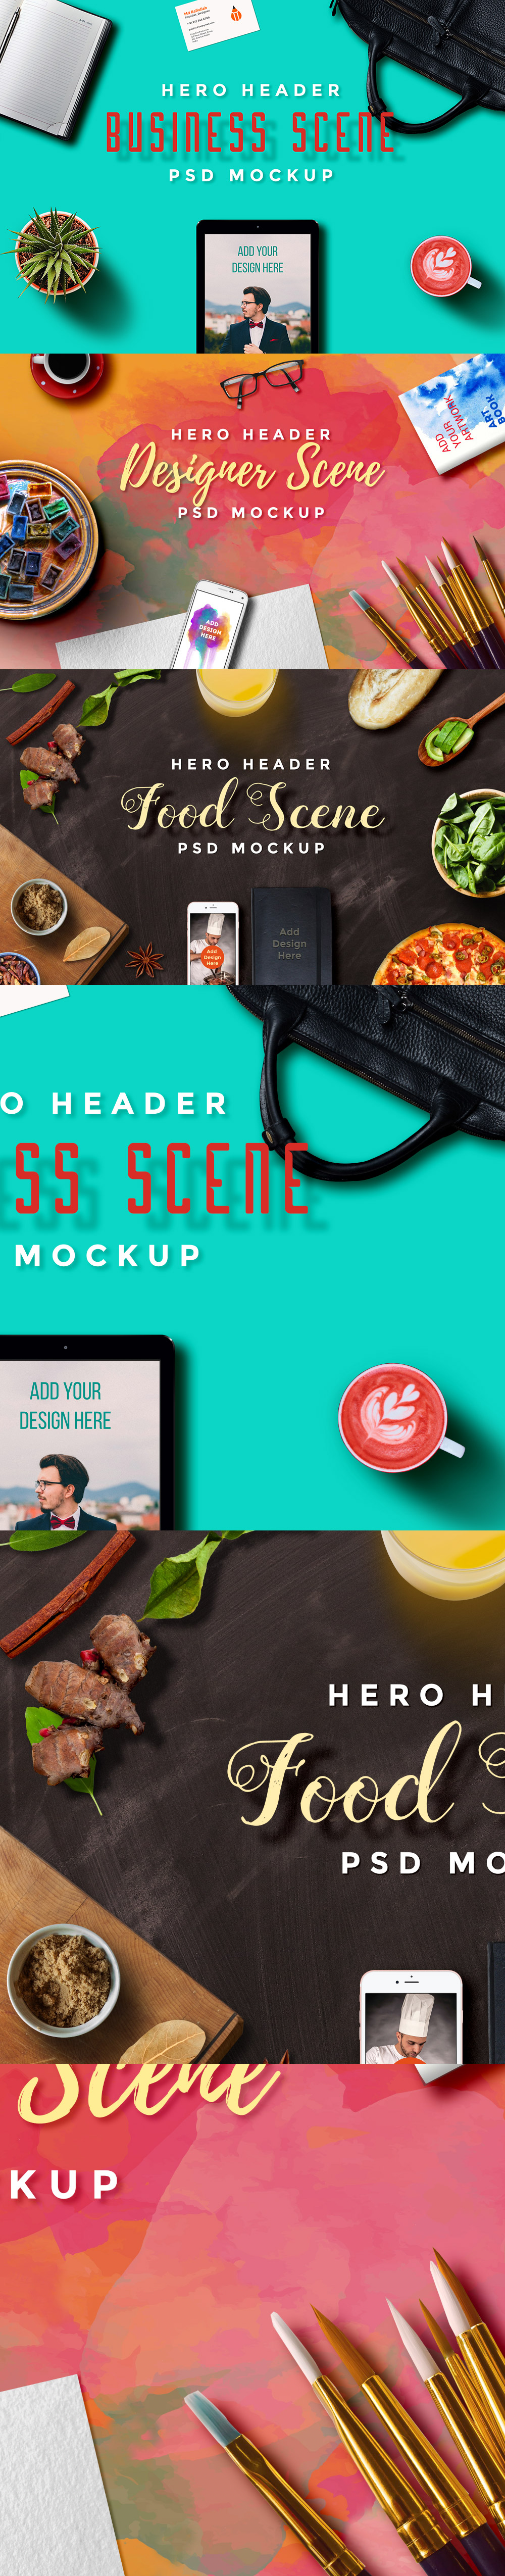 Hero Header Scene Mockup Templates